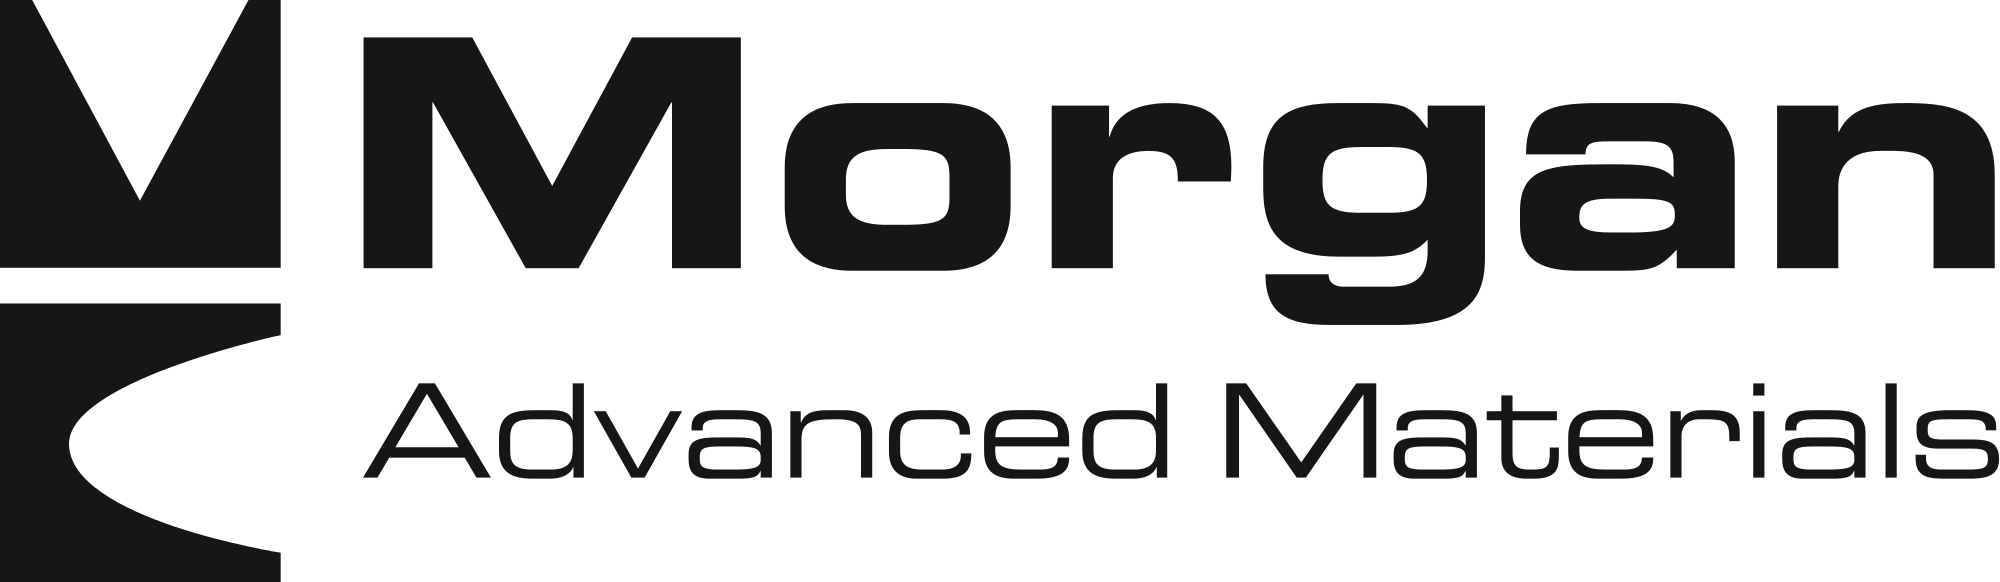 Morgan Advanced Materials - Electrical Carbon logo.